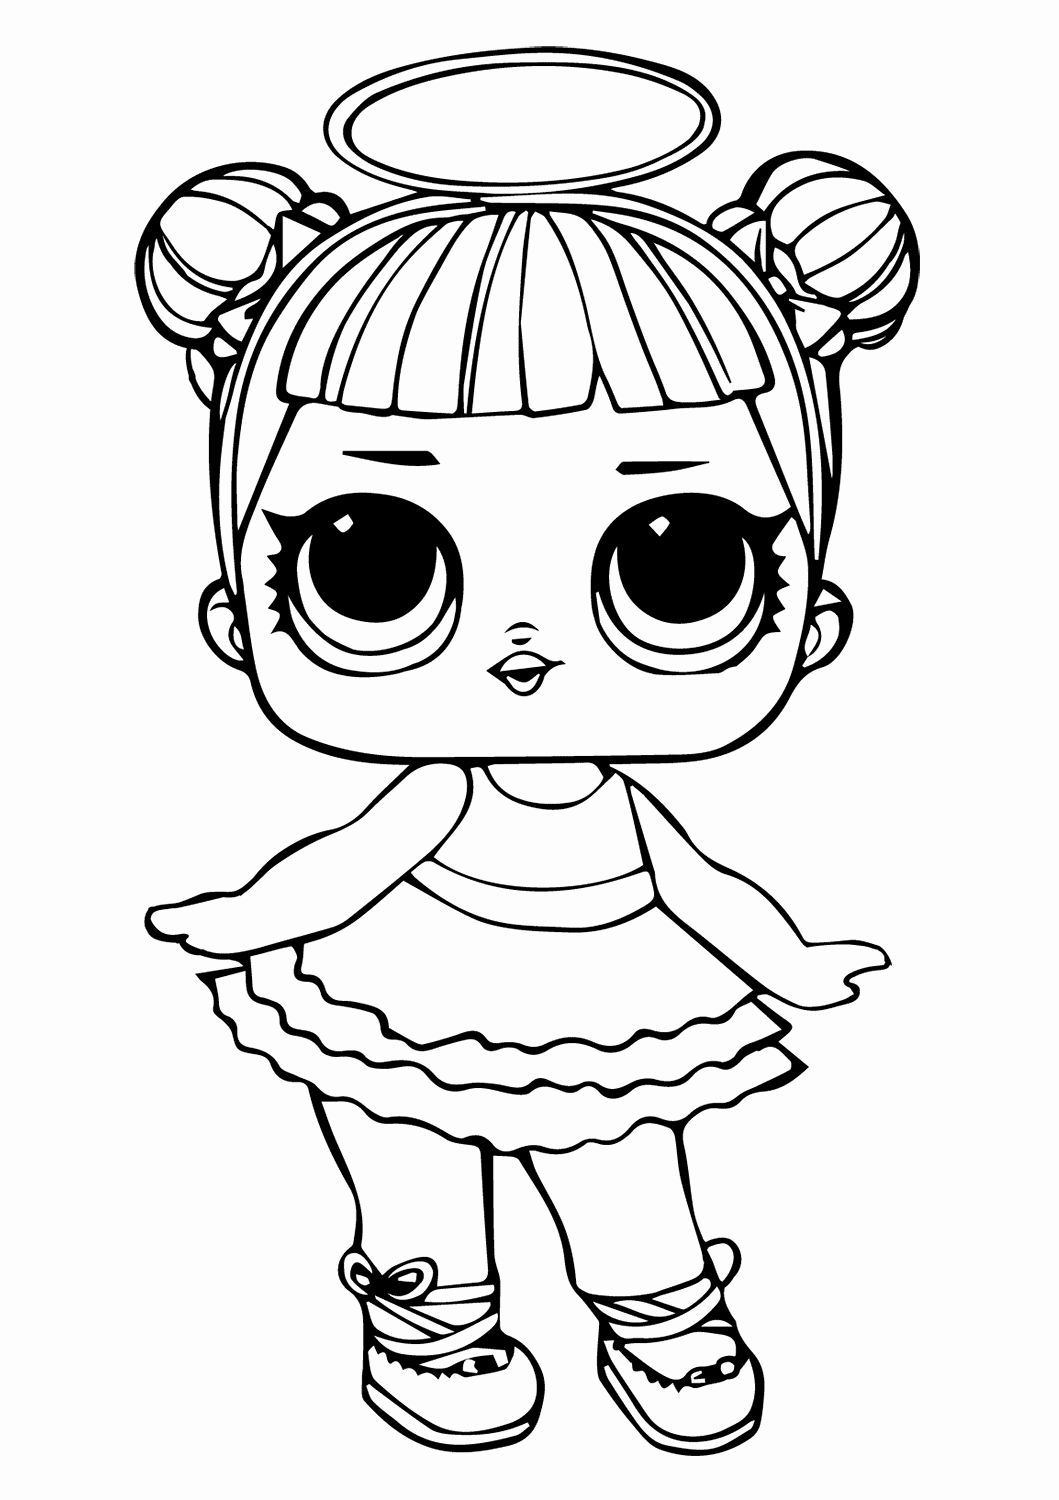 Lol Doll Printable Coloring Pages Fresh Lol Surprise Dolls Coloring Pages Super Coloring Pages Princess Coloring Pages Lol Dolls